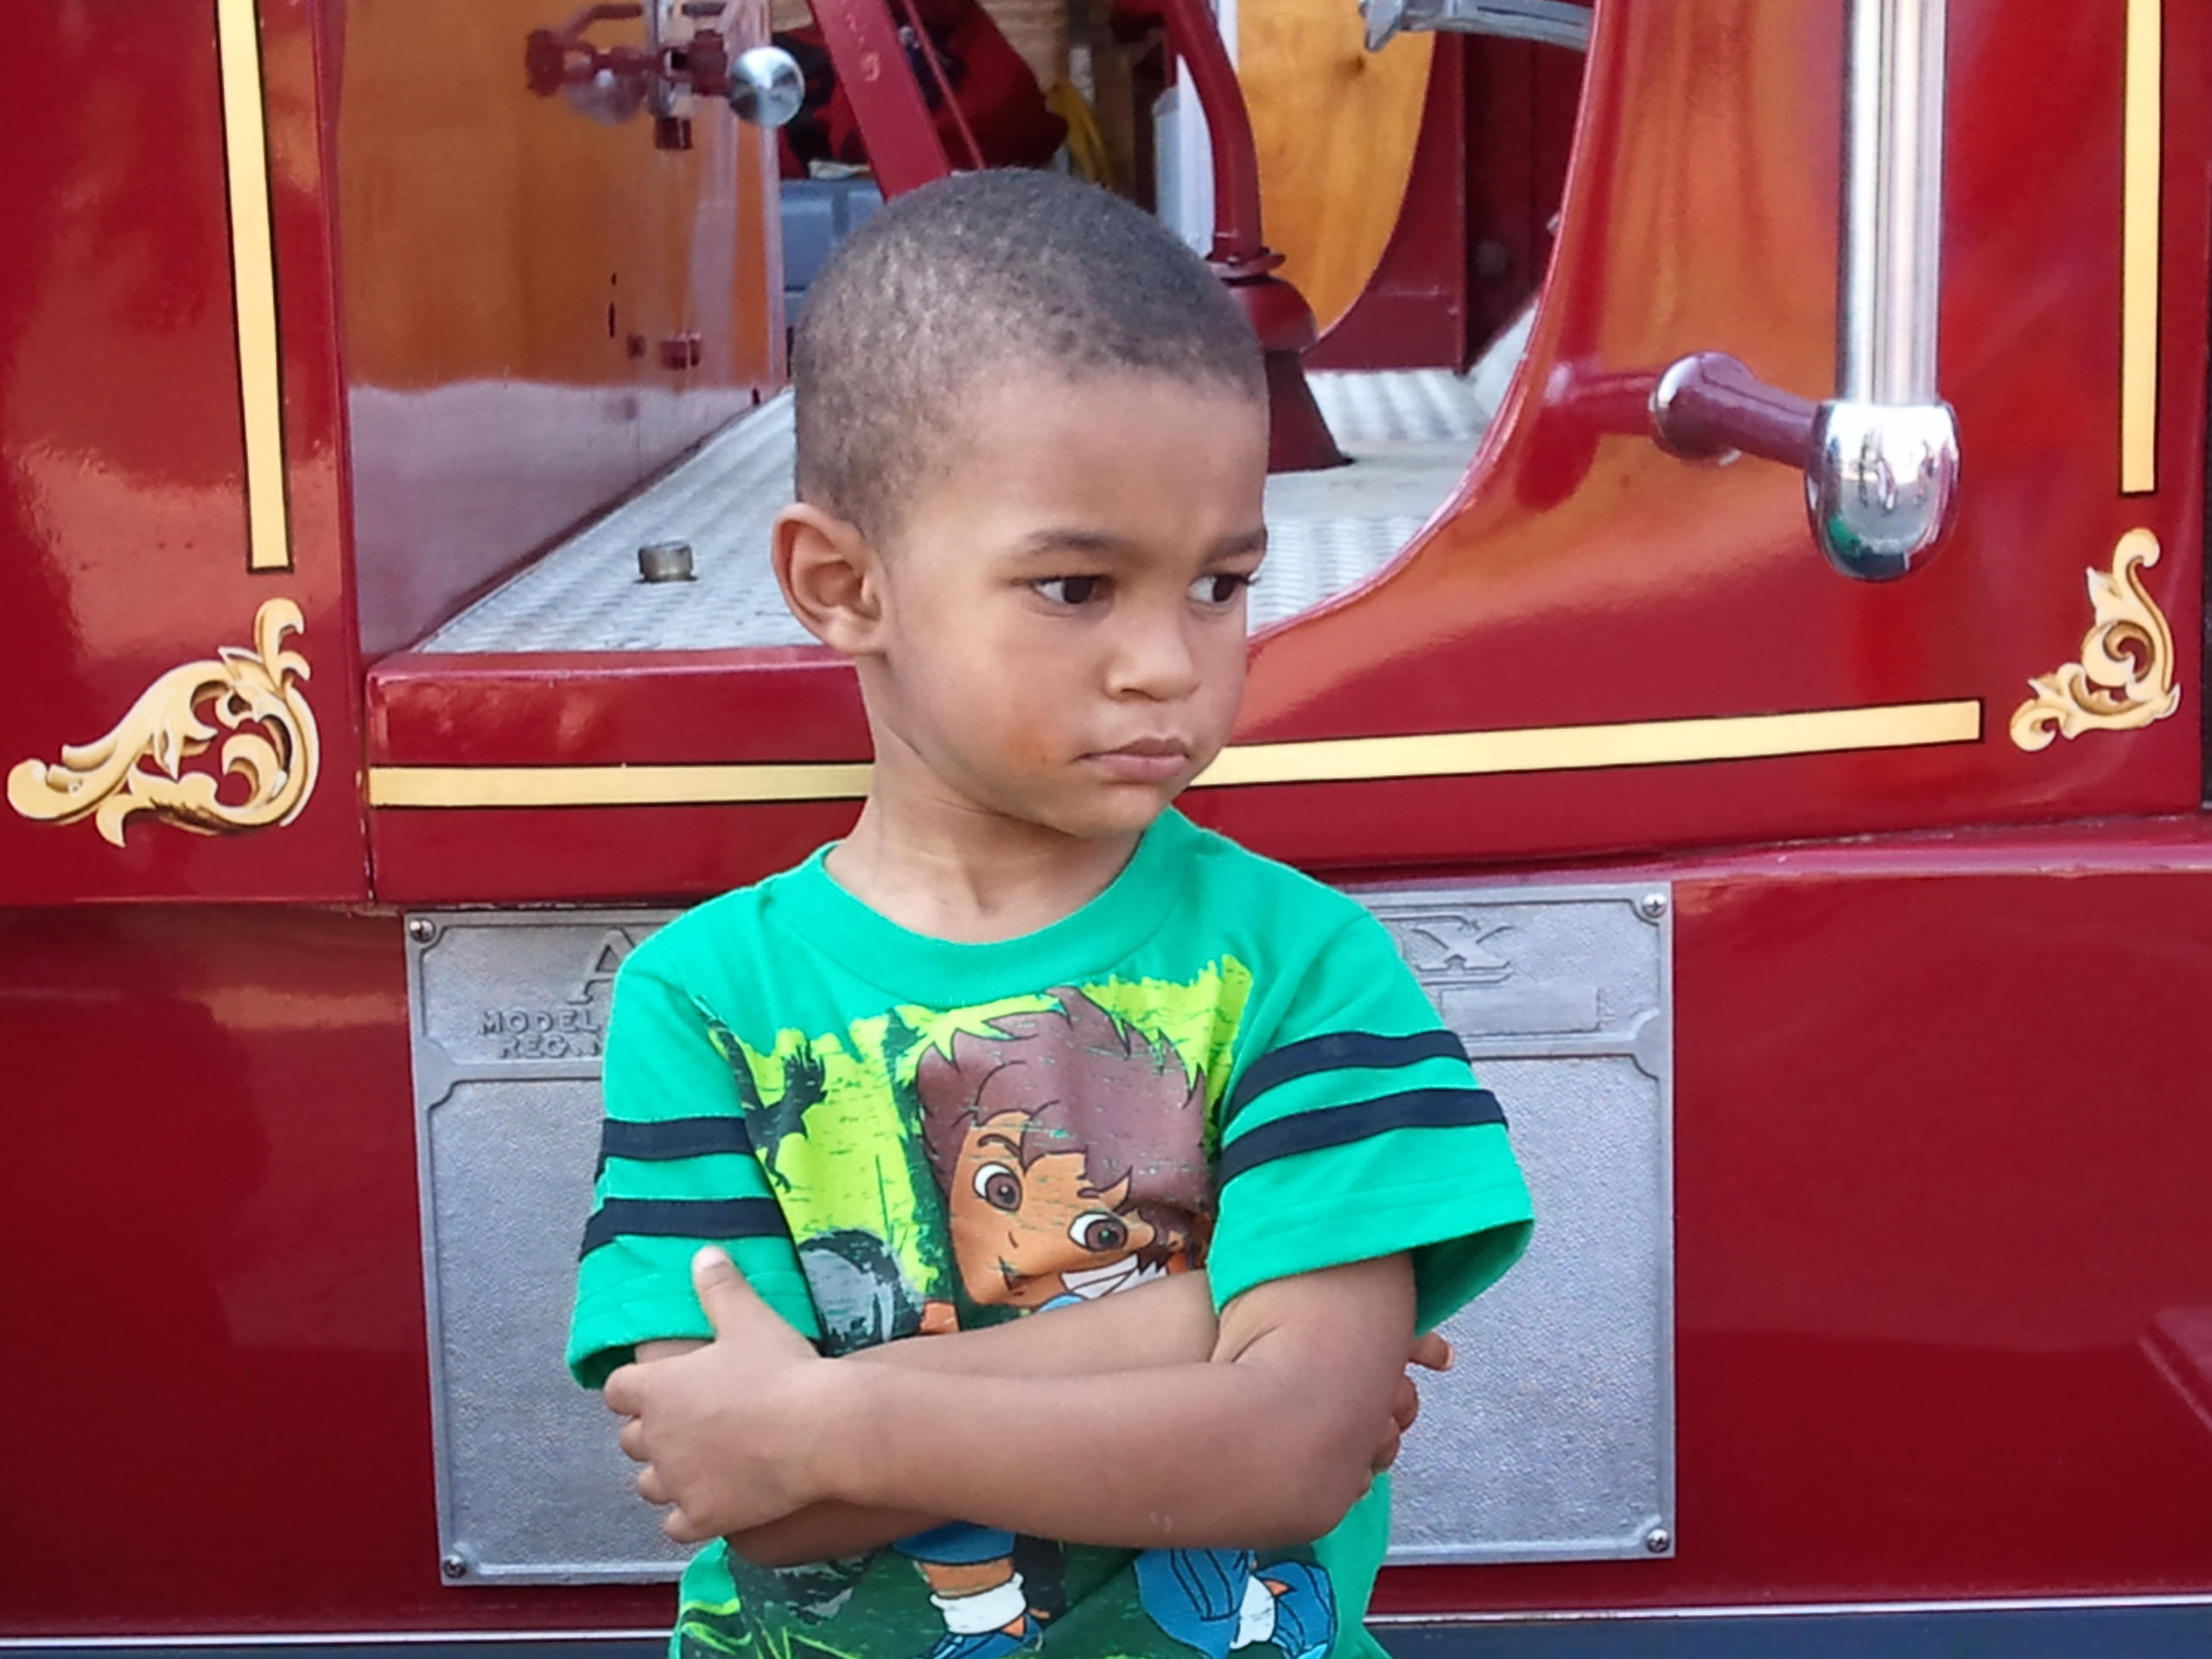 Little boy reluctantly poses on antique fire truck